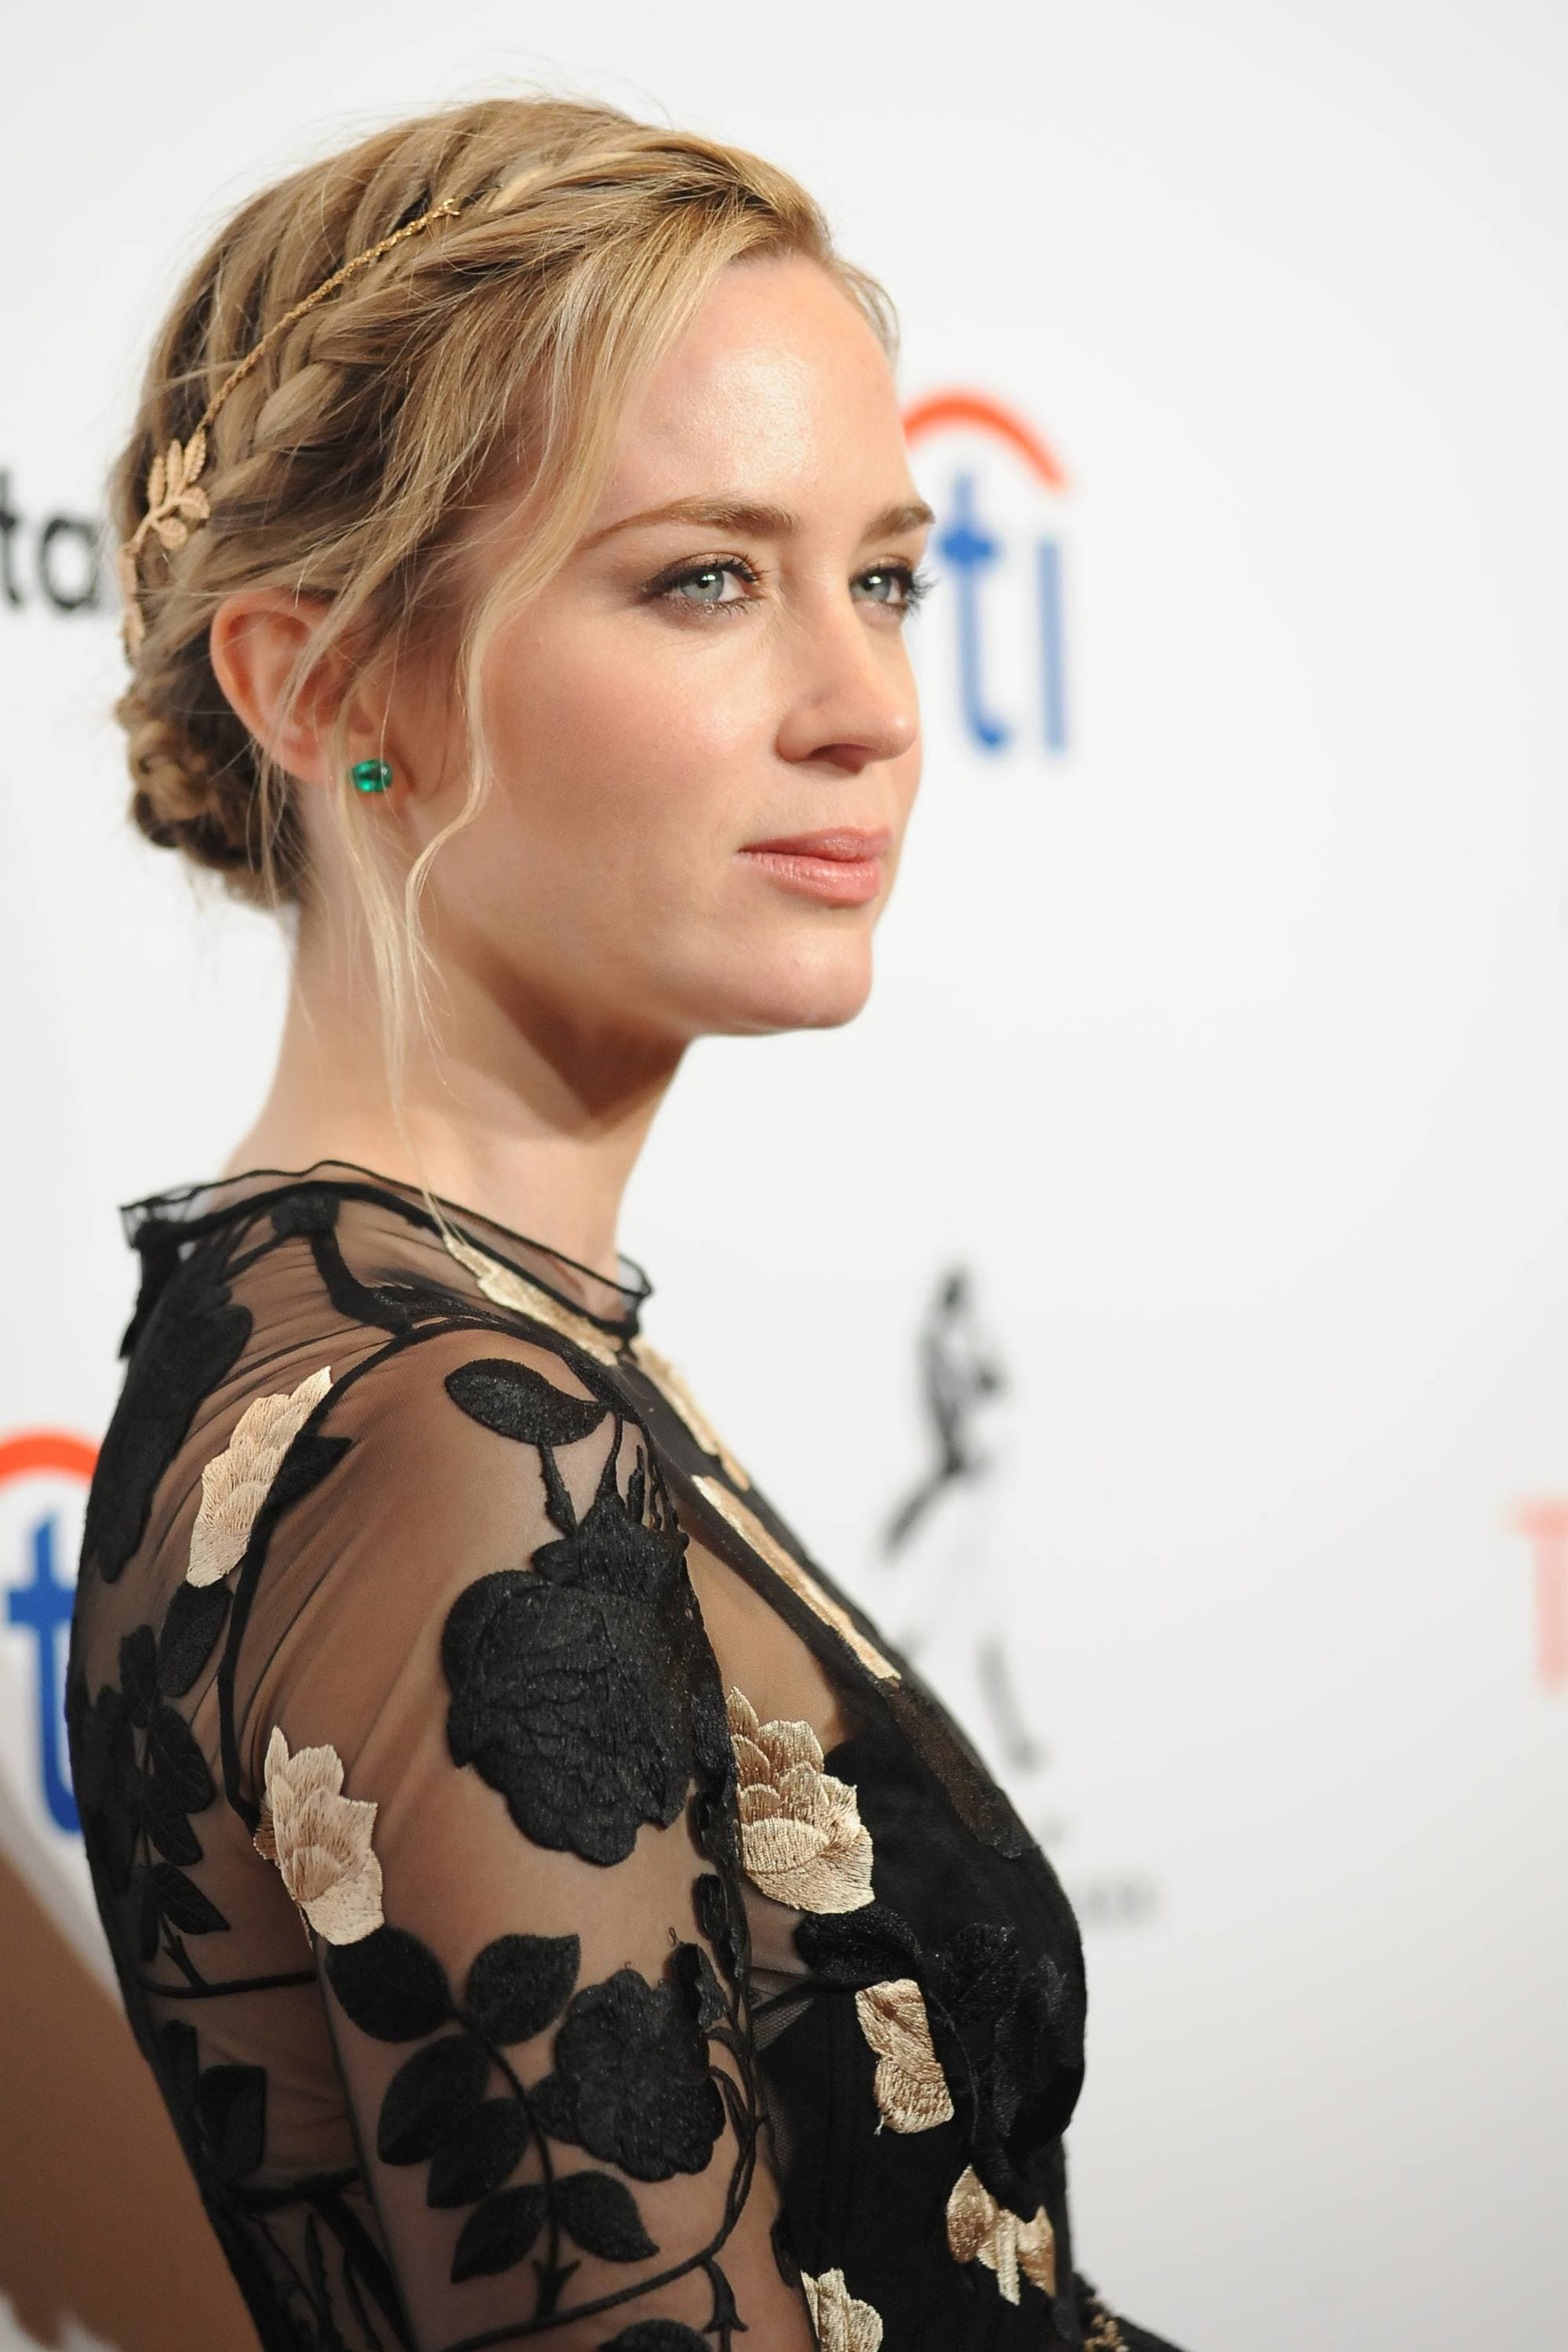 actress emily blunt on the red carpet at the time 100 gala with her honey blonde hair in a braided updo